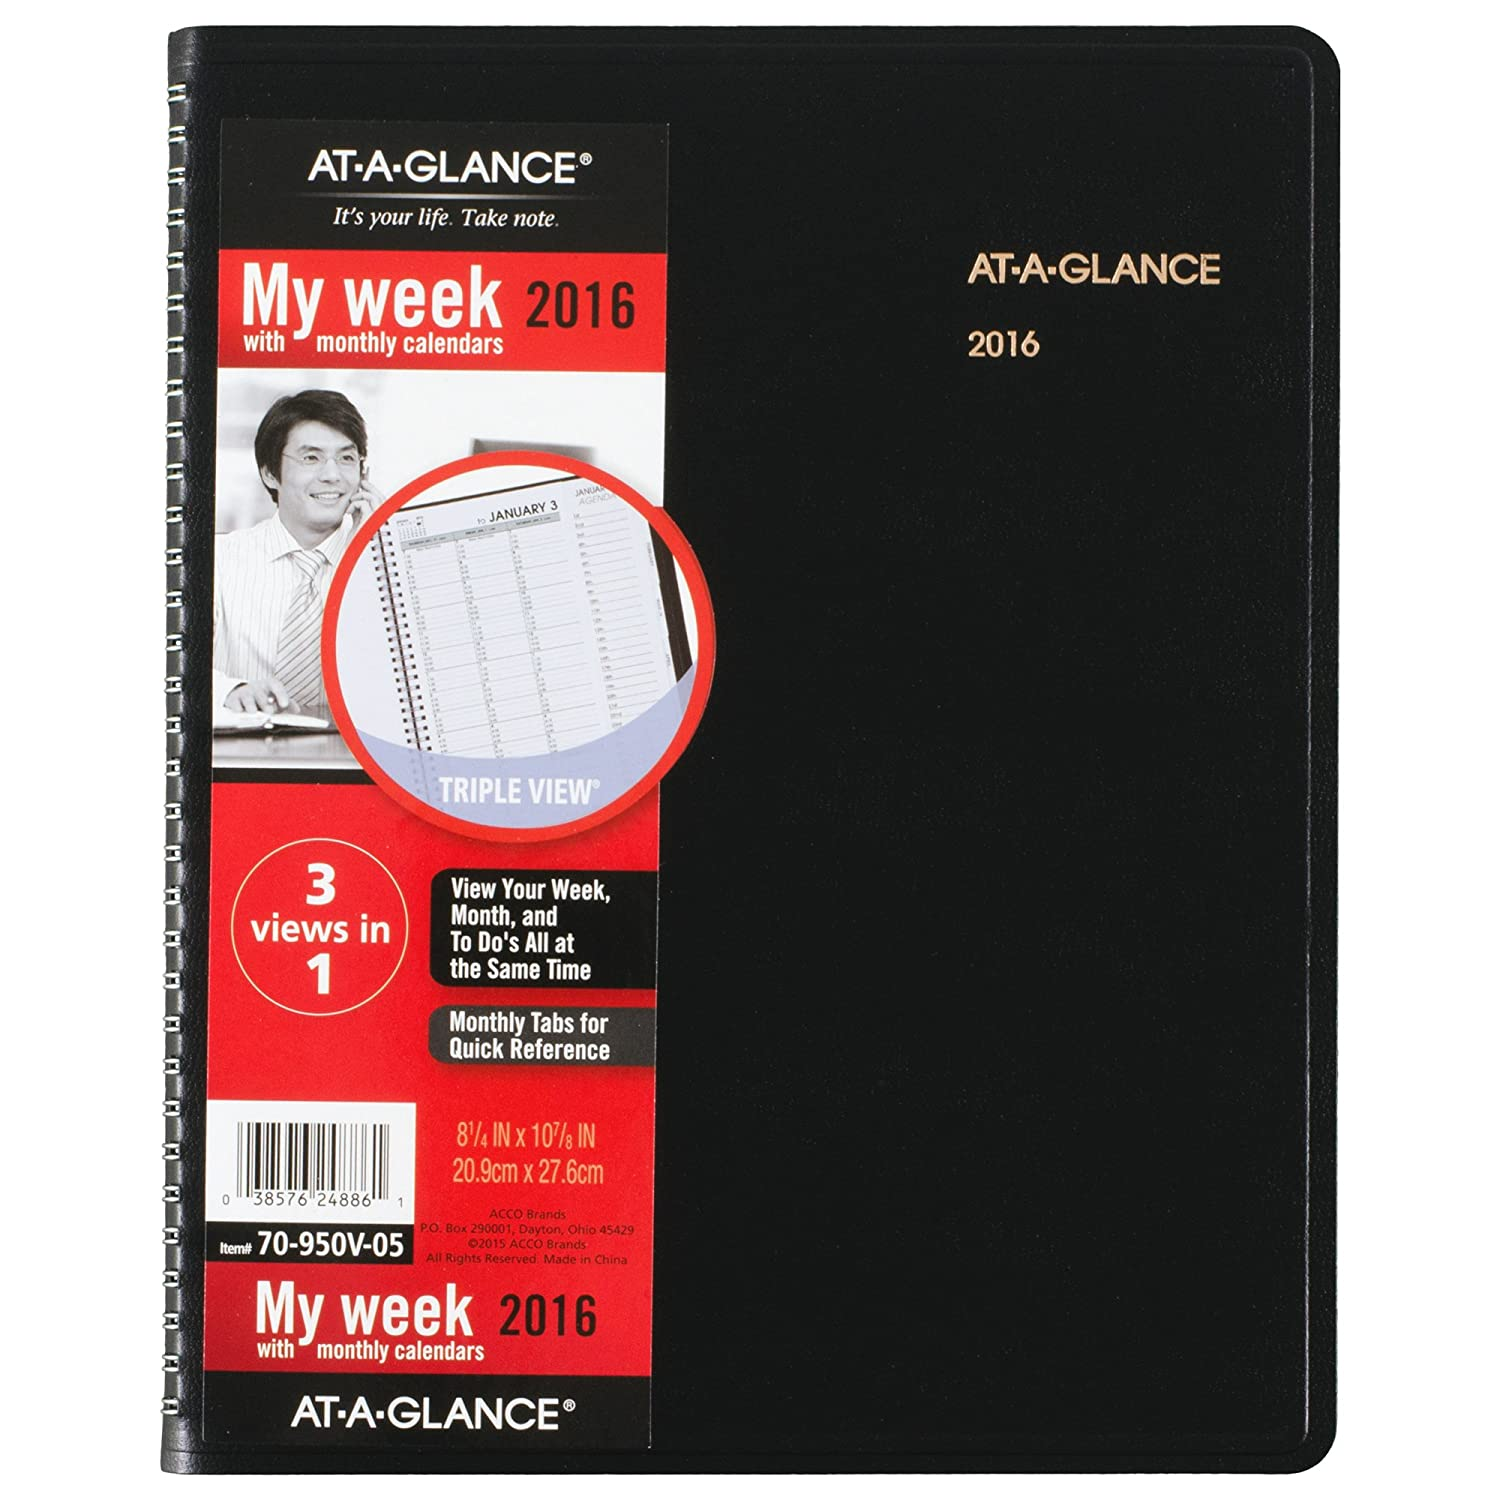 AT-A-GLANCE Weekly / Monthly Appointment Book 2016, Triple-View, 8-1/4 x 10-7/8 Inches, Black (70-950V-05)